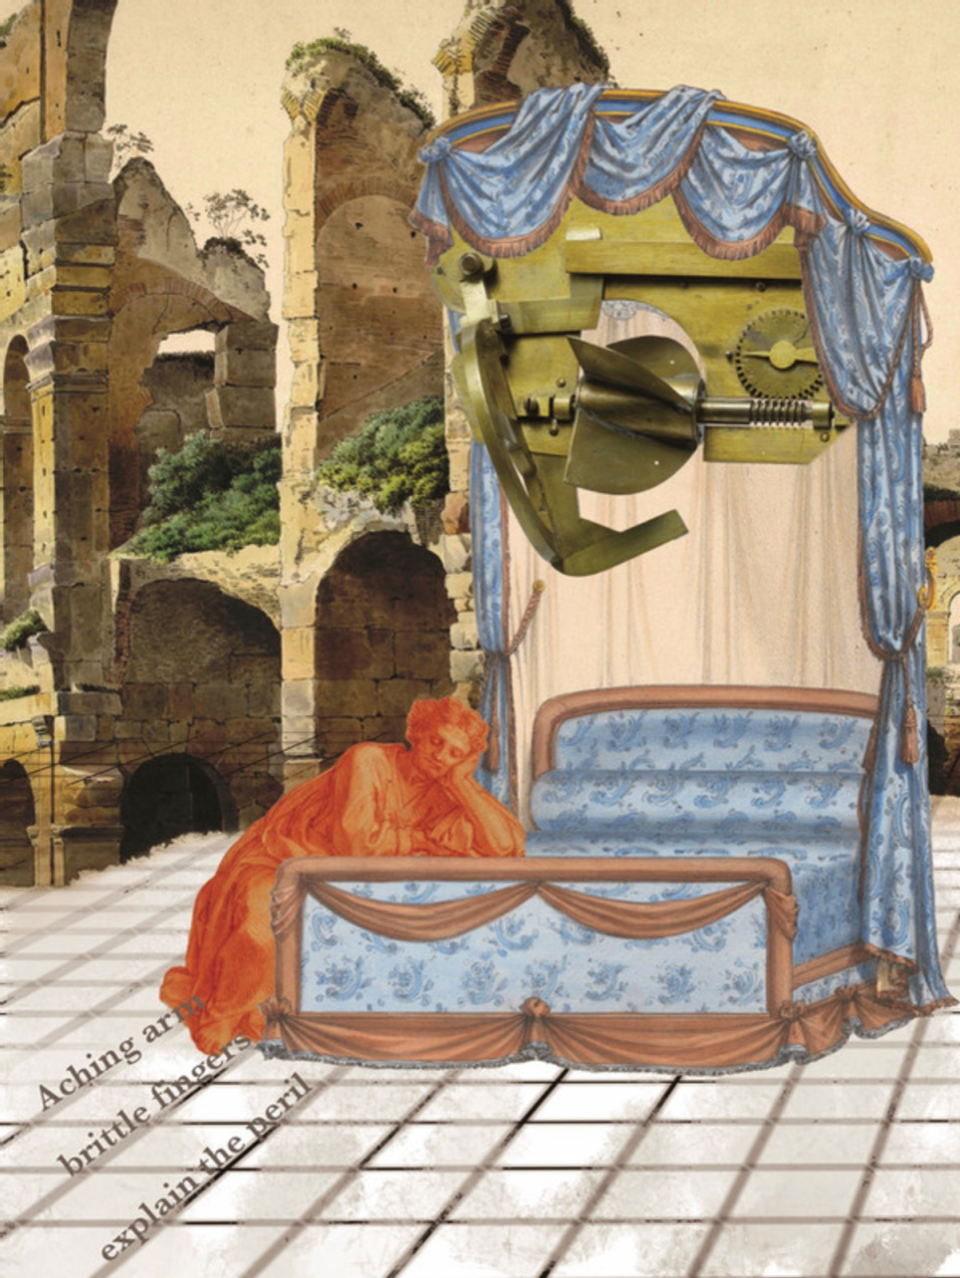 """Image: """"Untitled"""" digital illustration and collage by Sarah Tyschenko. The piece shows a collage of an orange woman reclining on her knees next to a blue bed. A machine part is suspended above her, and there is building rubble in the background. The text on the image reads: """"Aching arm / brittle fingers / explain the peril."""" Image courtesy of Sarah Tyschenko."""